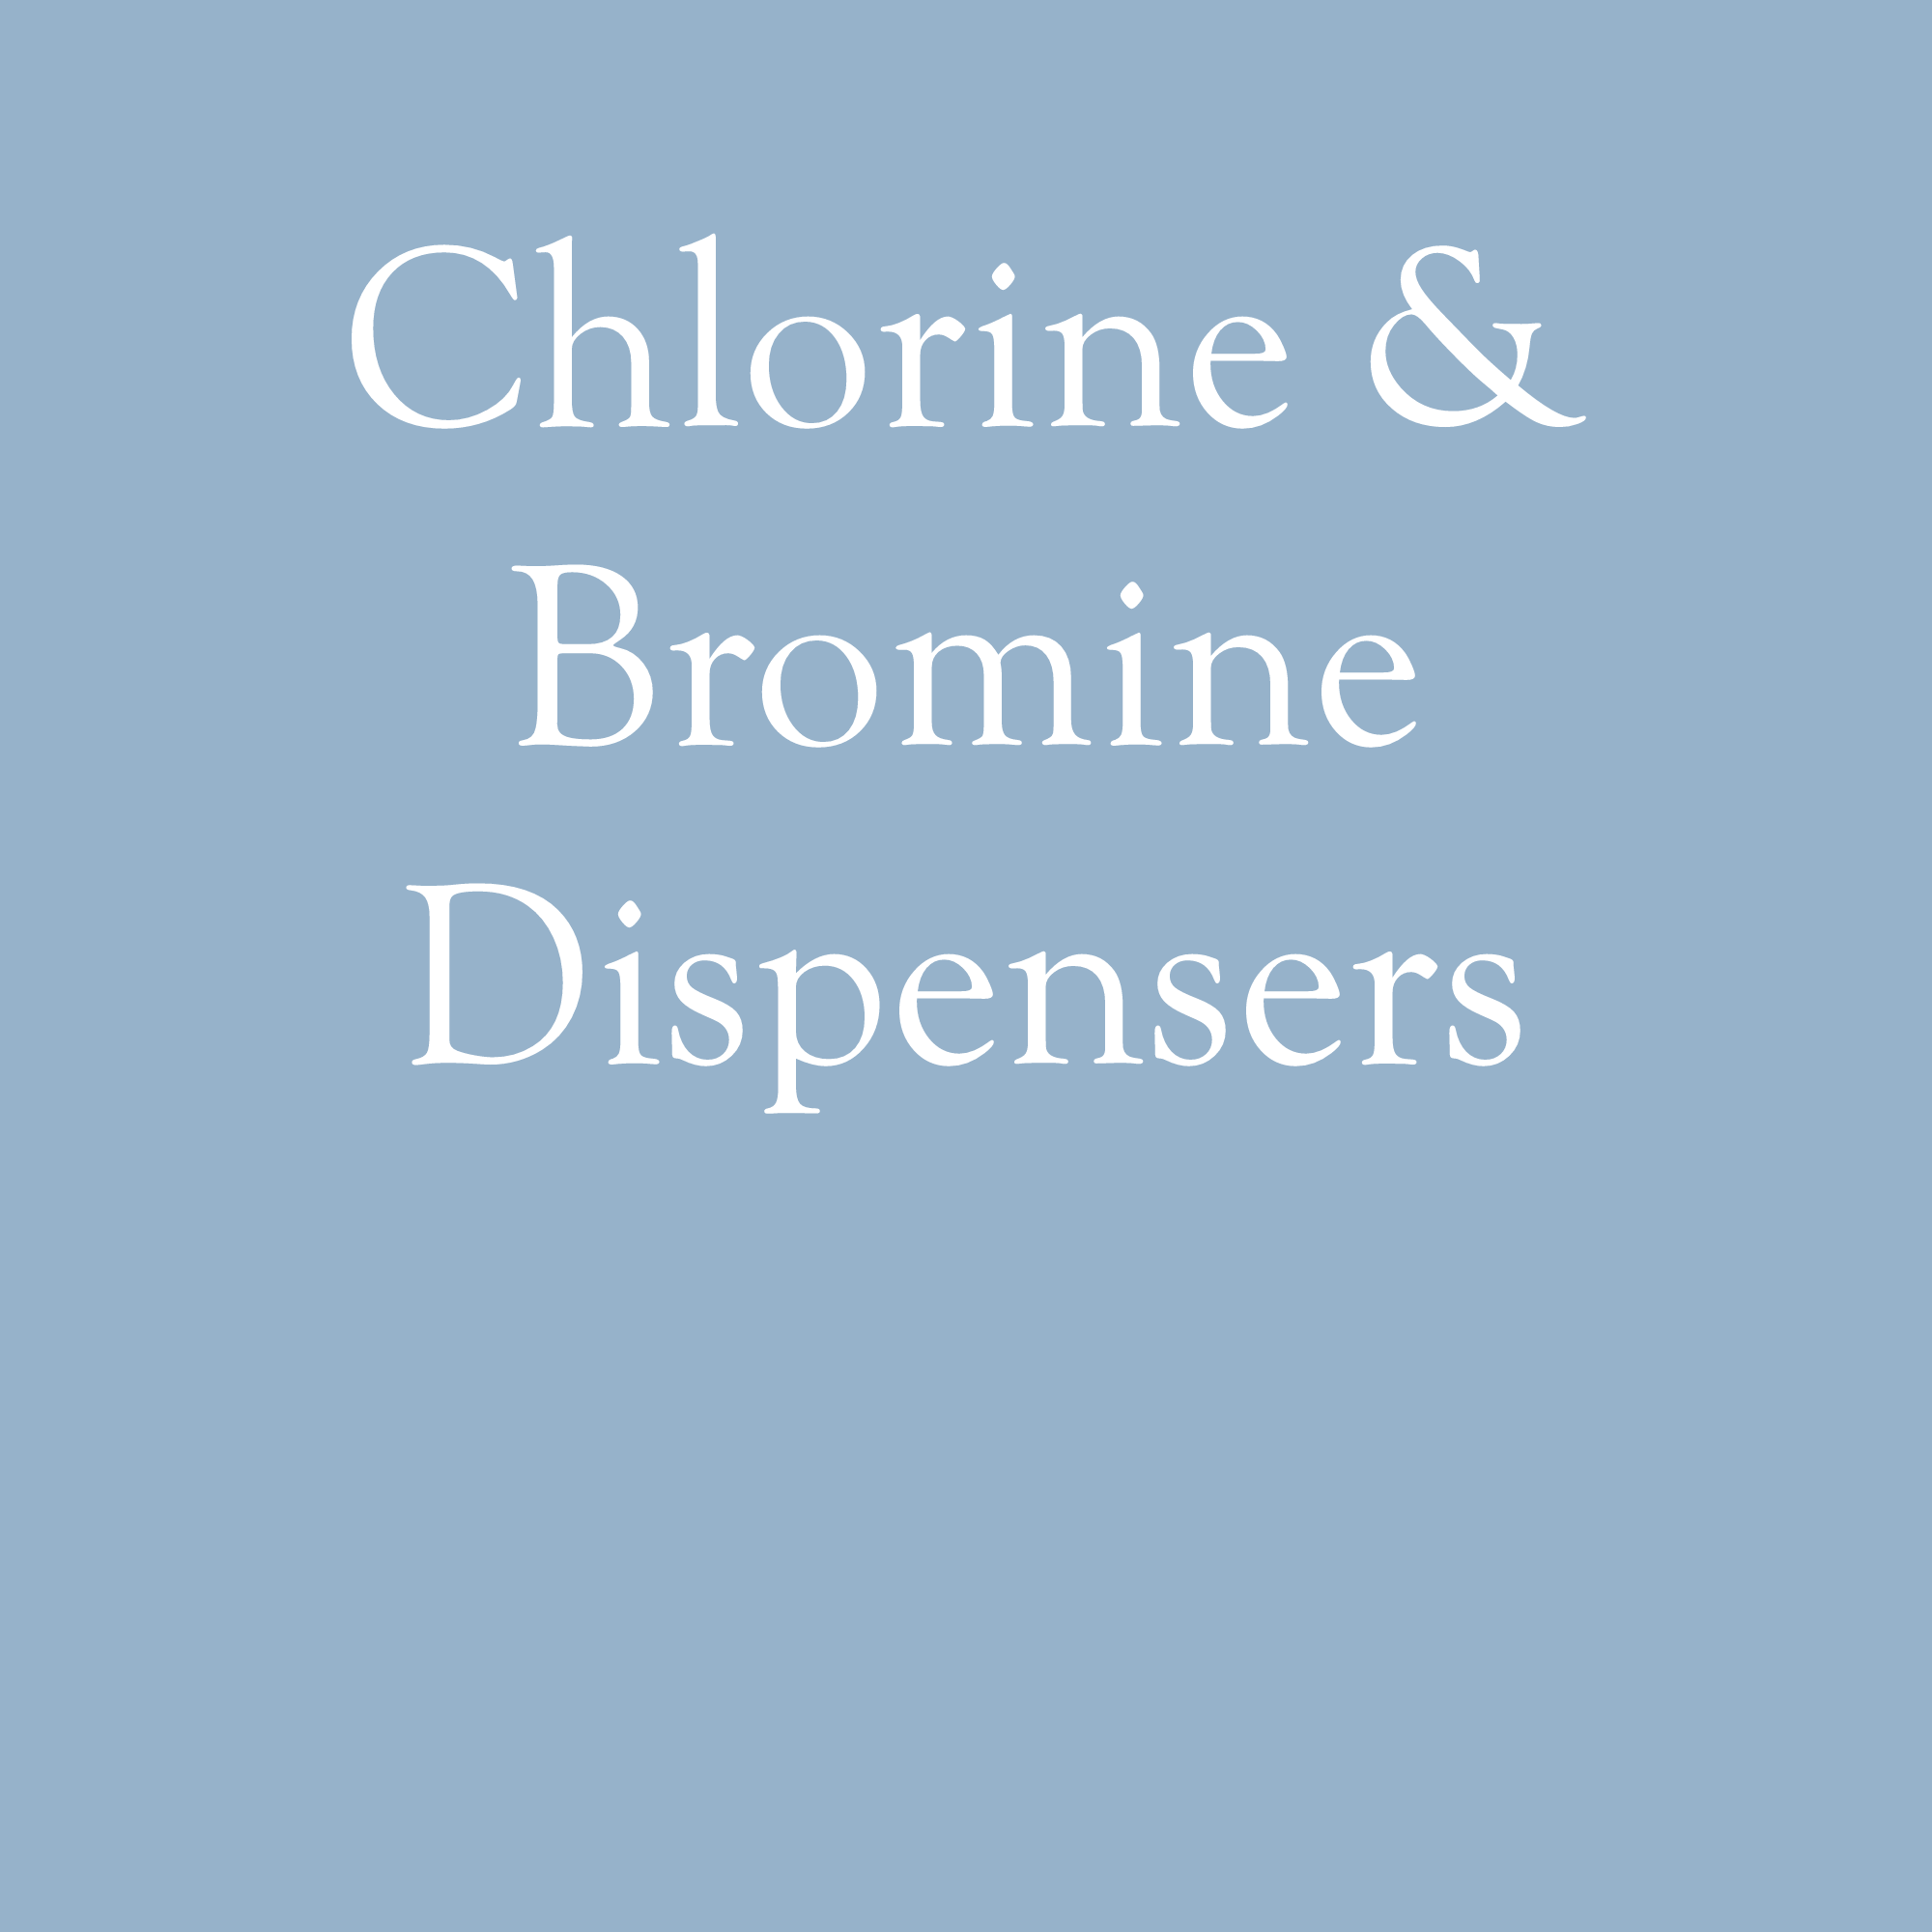 Chlorine and Bromine Dispensers